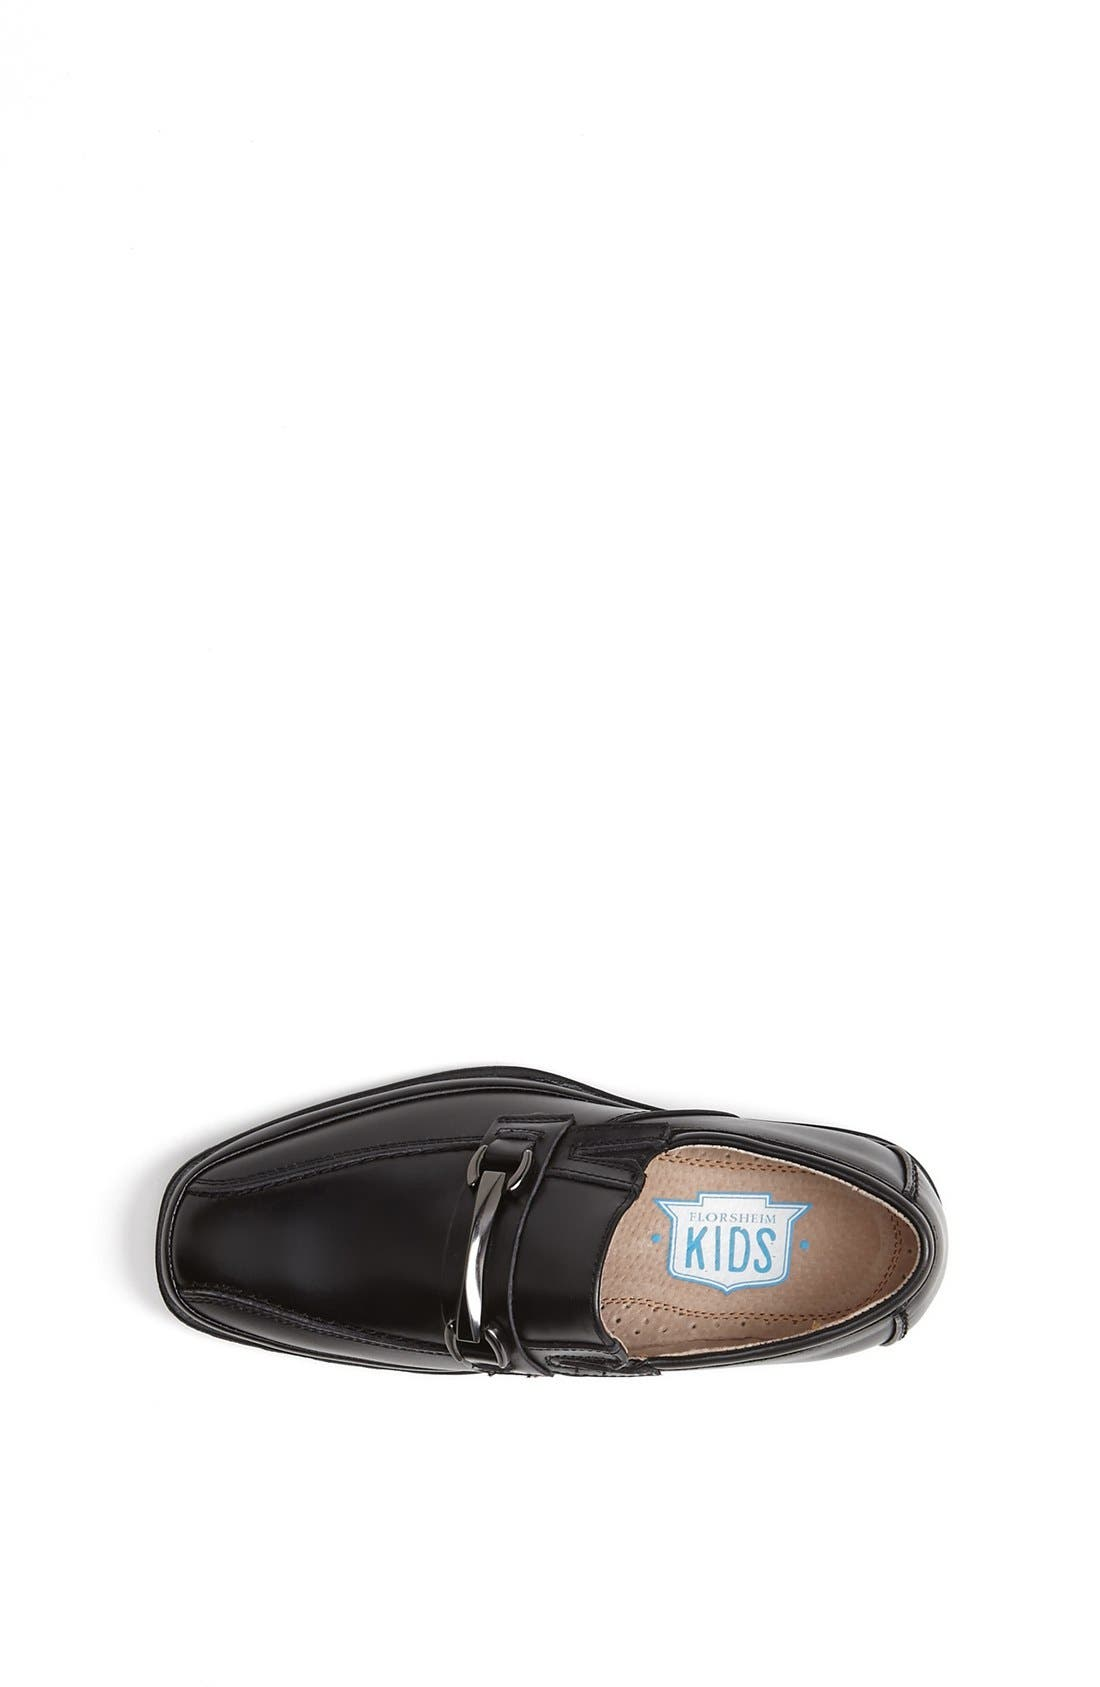 Alternate Image 3  - Florsheim 'Wrapid Jr.' Slip-On (Toddler, Little Kid & Big Kid)